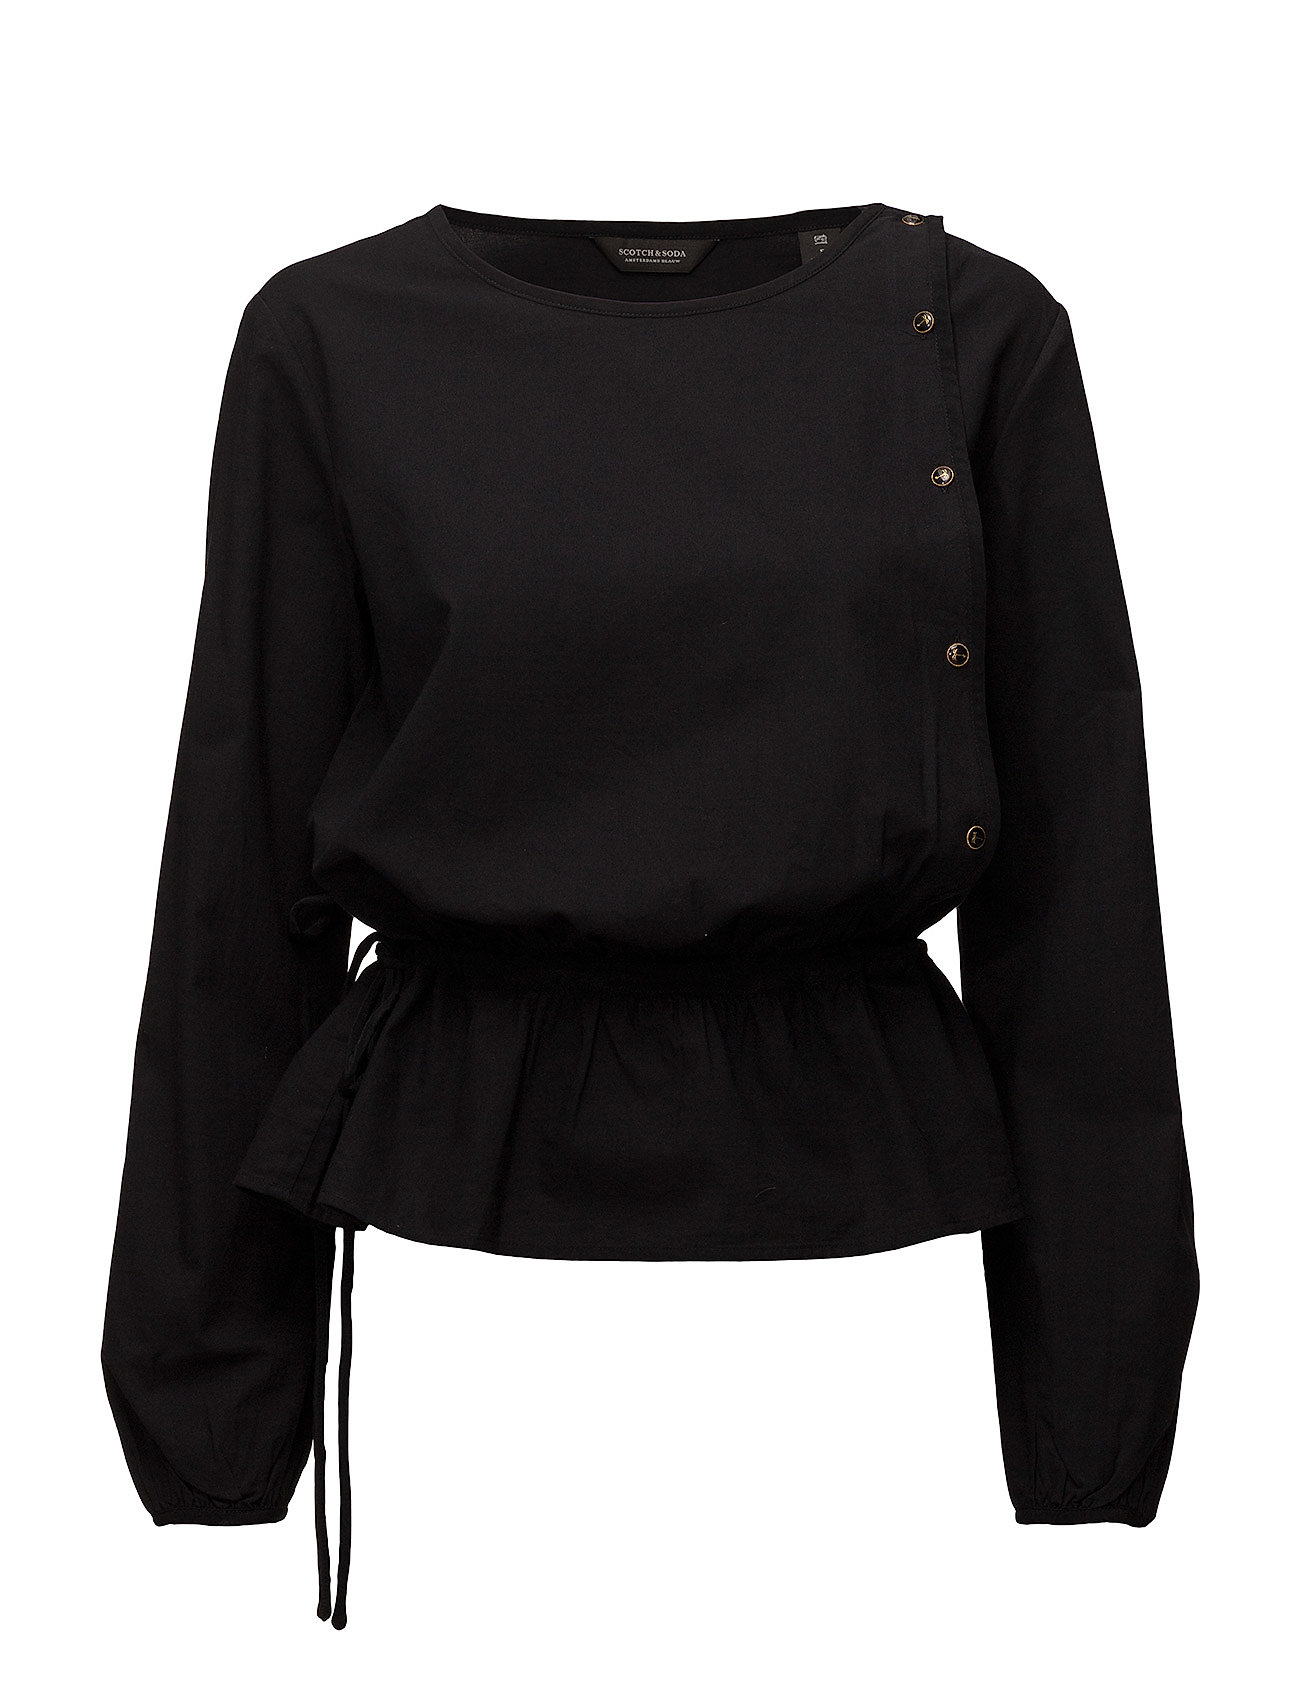 Drapy Femime Top With Button Closure